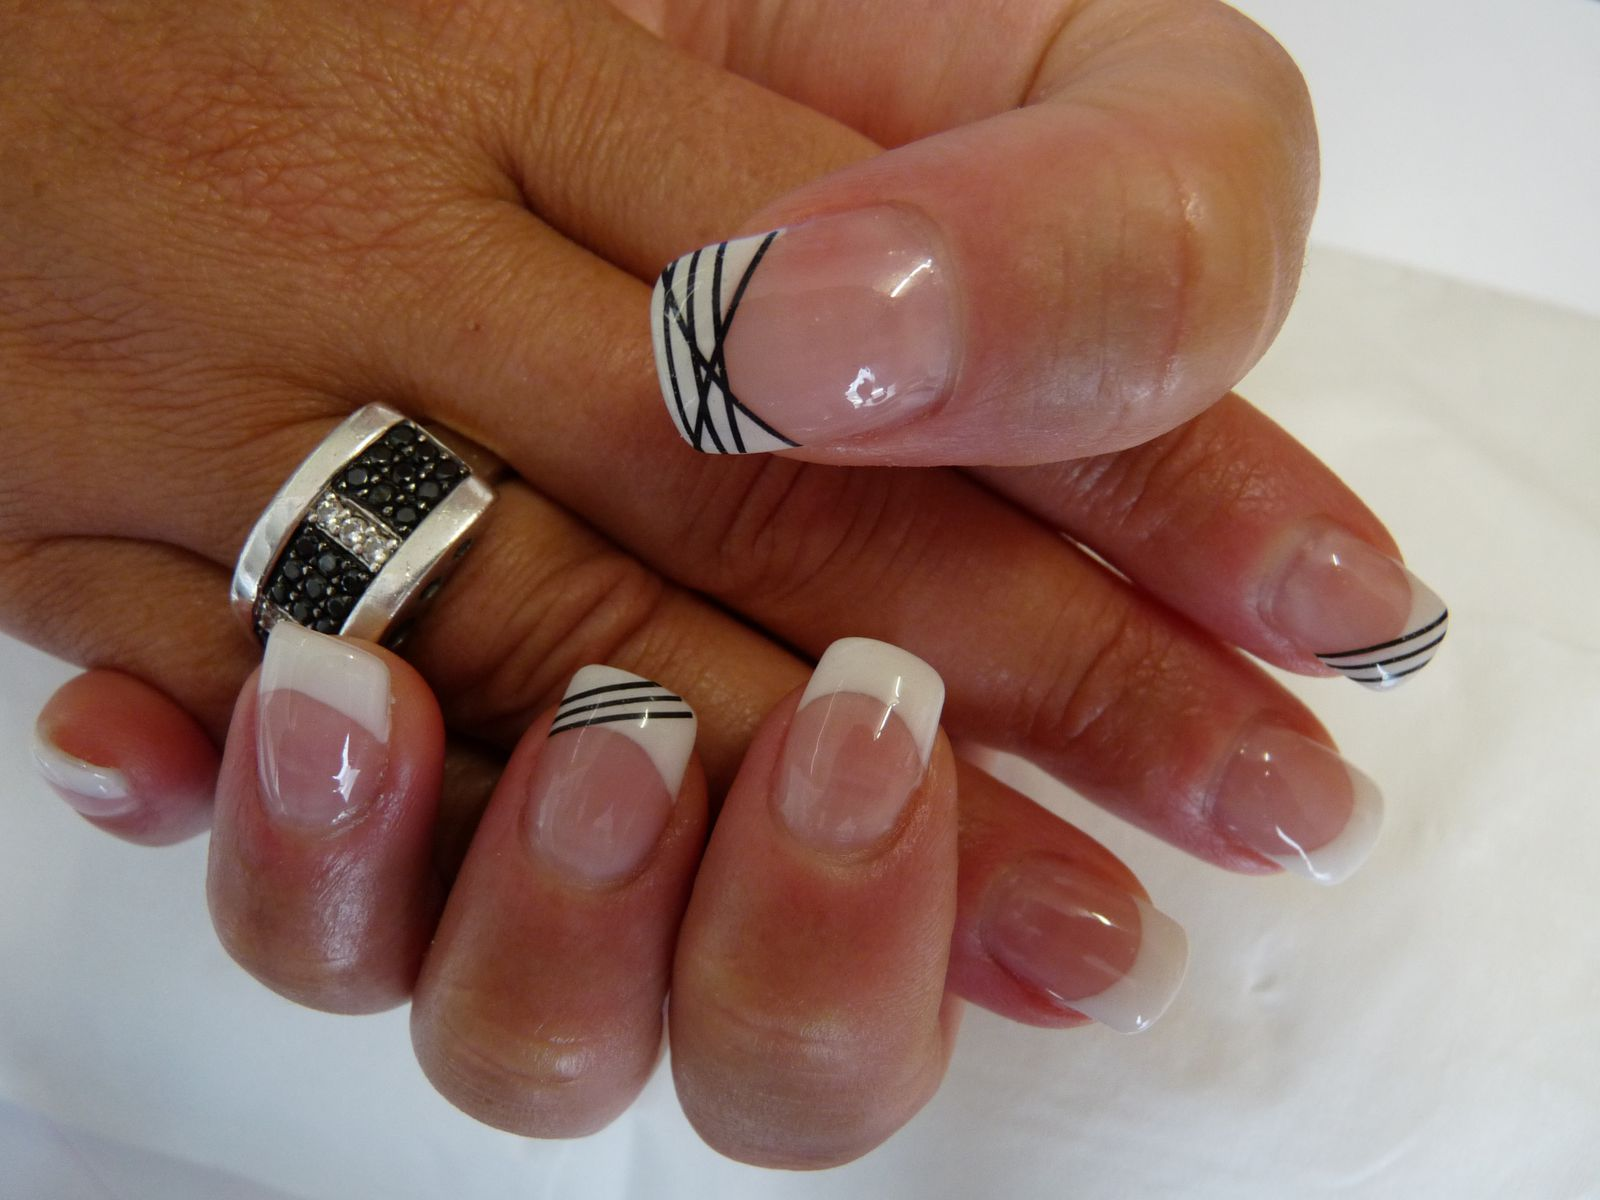 Mains de Katty après pose capsules + gel uv + french + fil noir